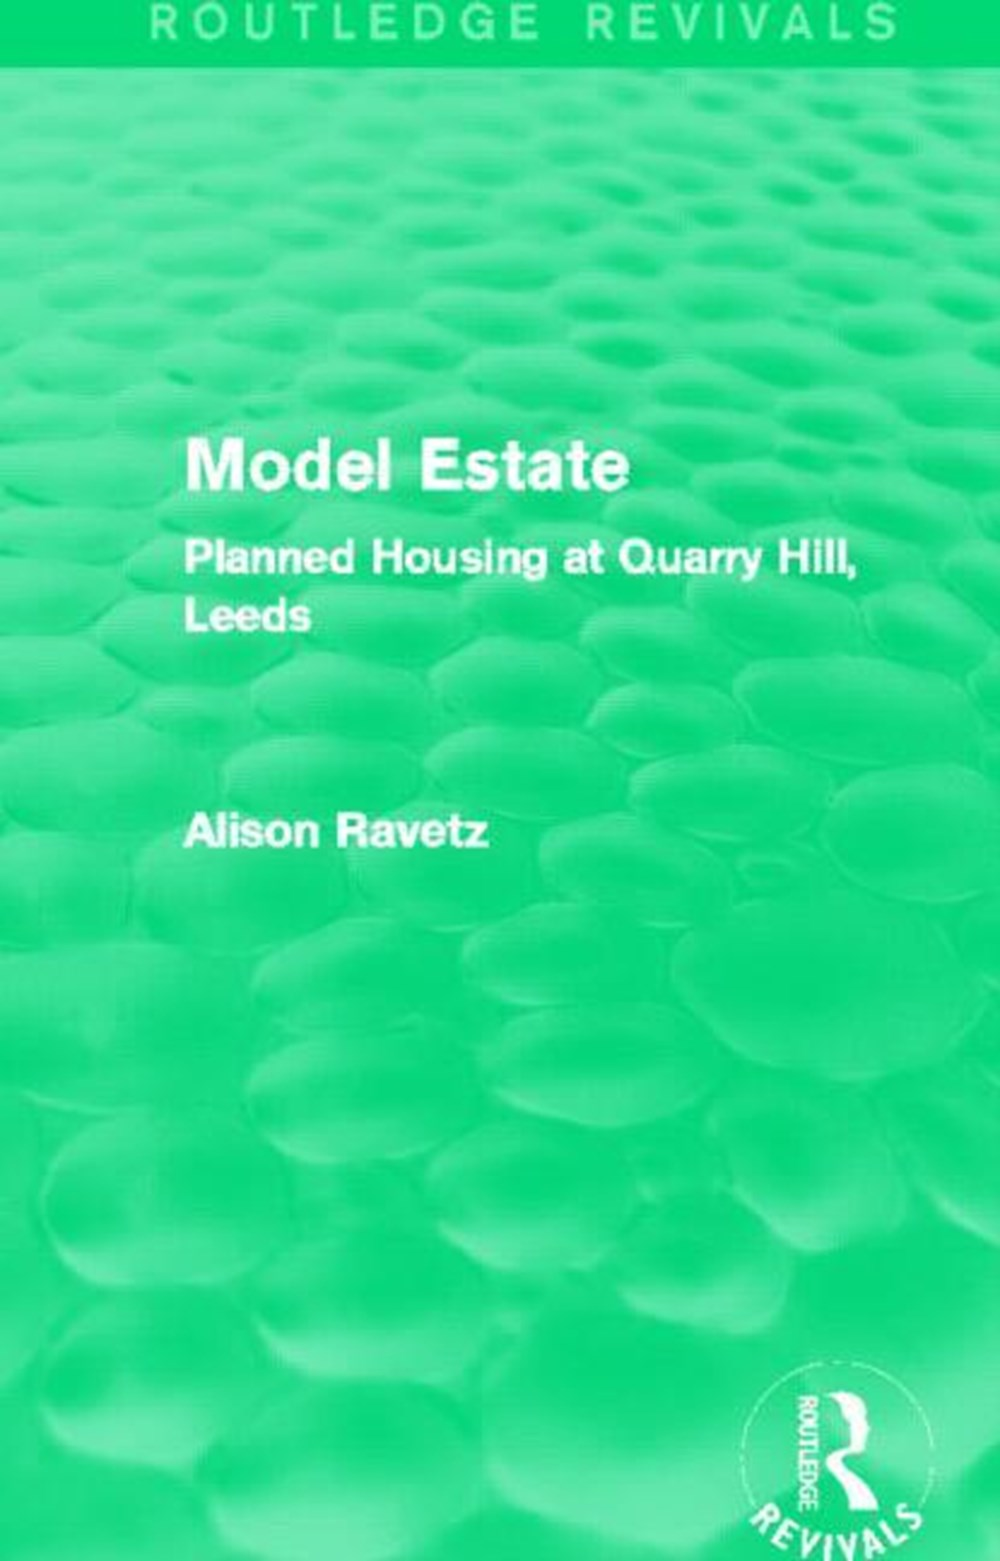 Model Estate (Routledge Revivals) Planned Housing at Quarry Hill Leeds